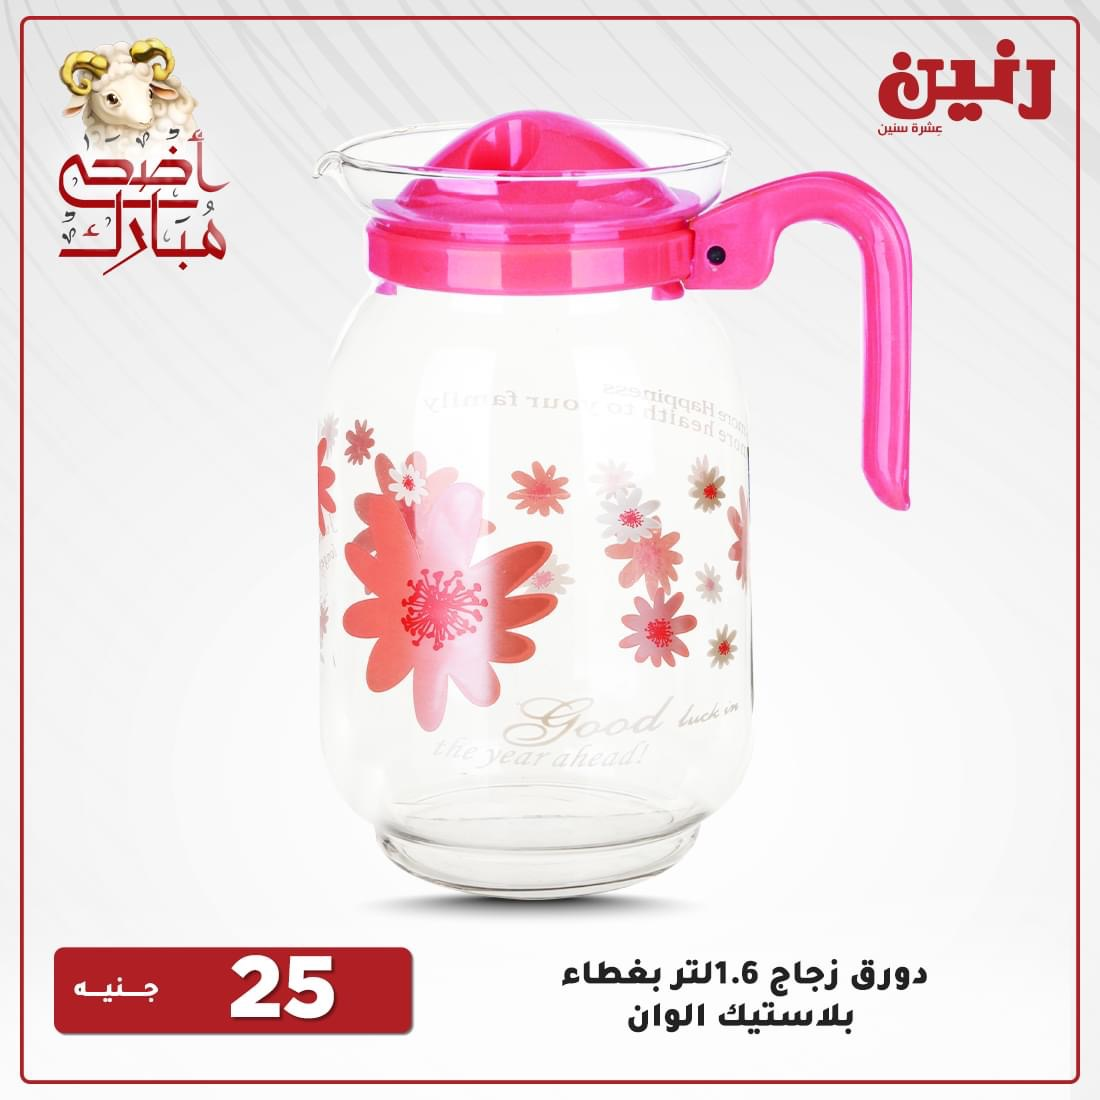 Raneen offers today for appliances and household appliances from July 22 to 24, 2021 3